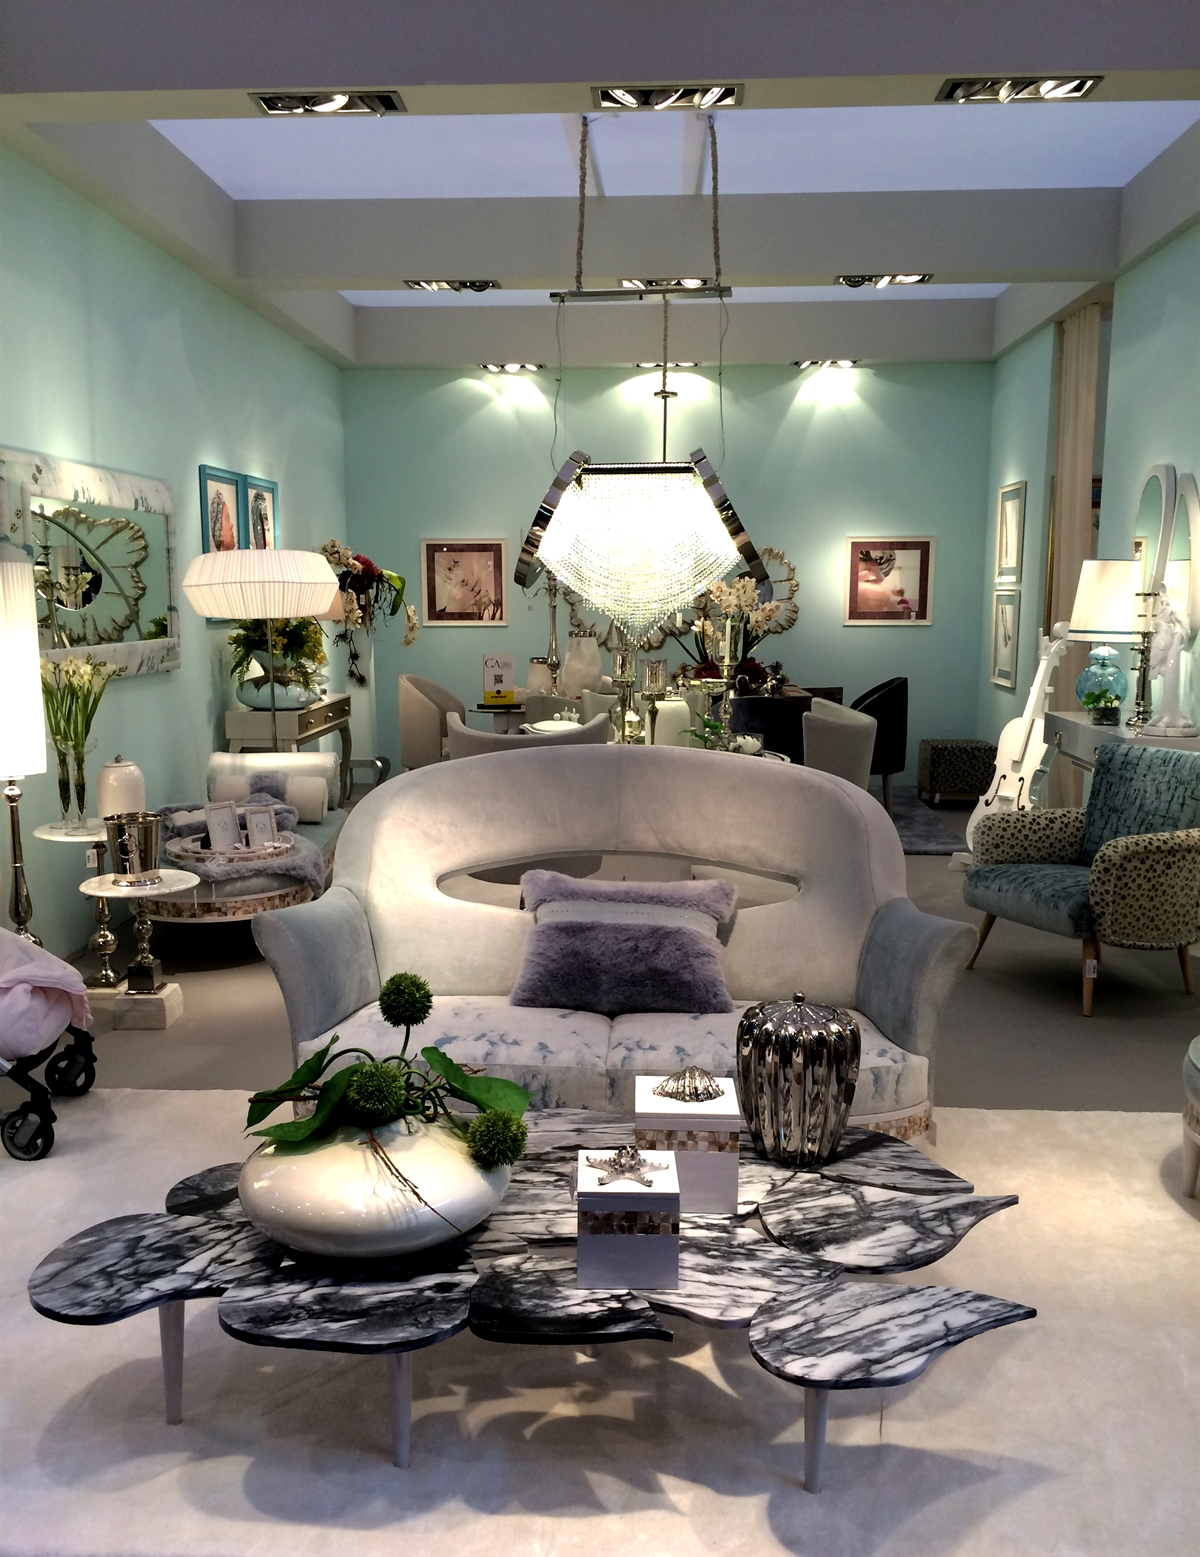 39 maison et objet 2015 paris furniture and home decorating fair interior design recycling shabby handmade oriental chinoiserie trends targi meblowe w paryzu modne wnetrza FORelements blog